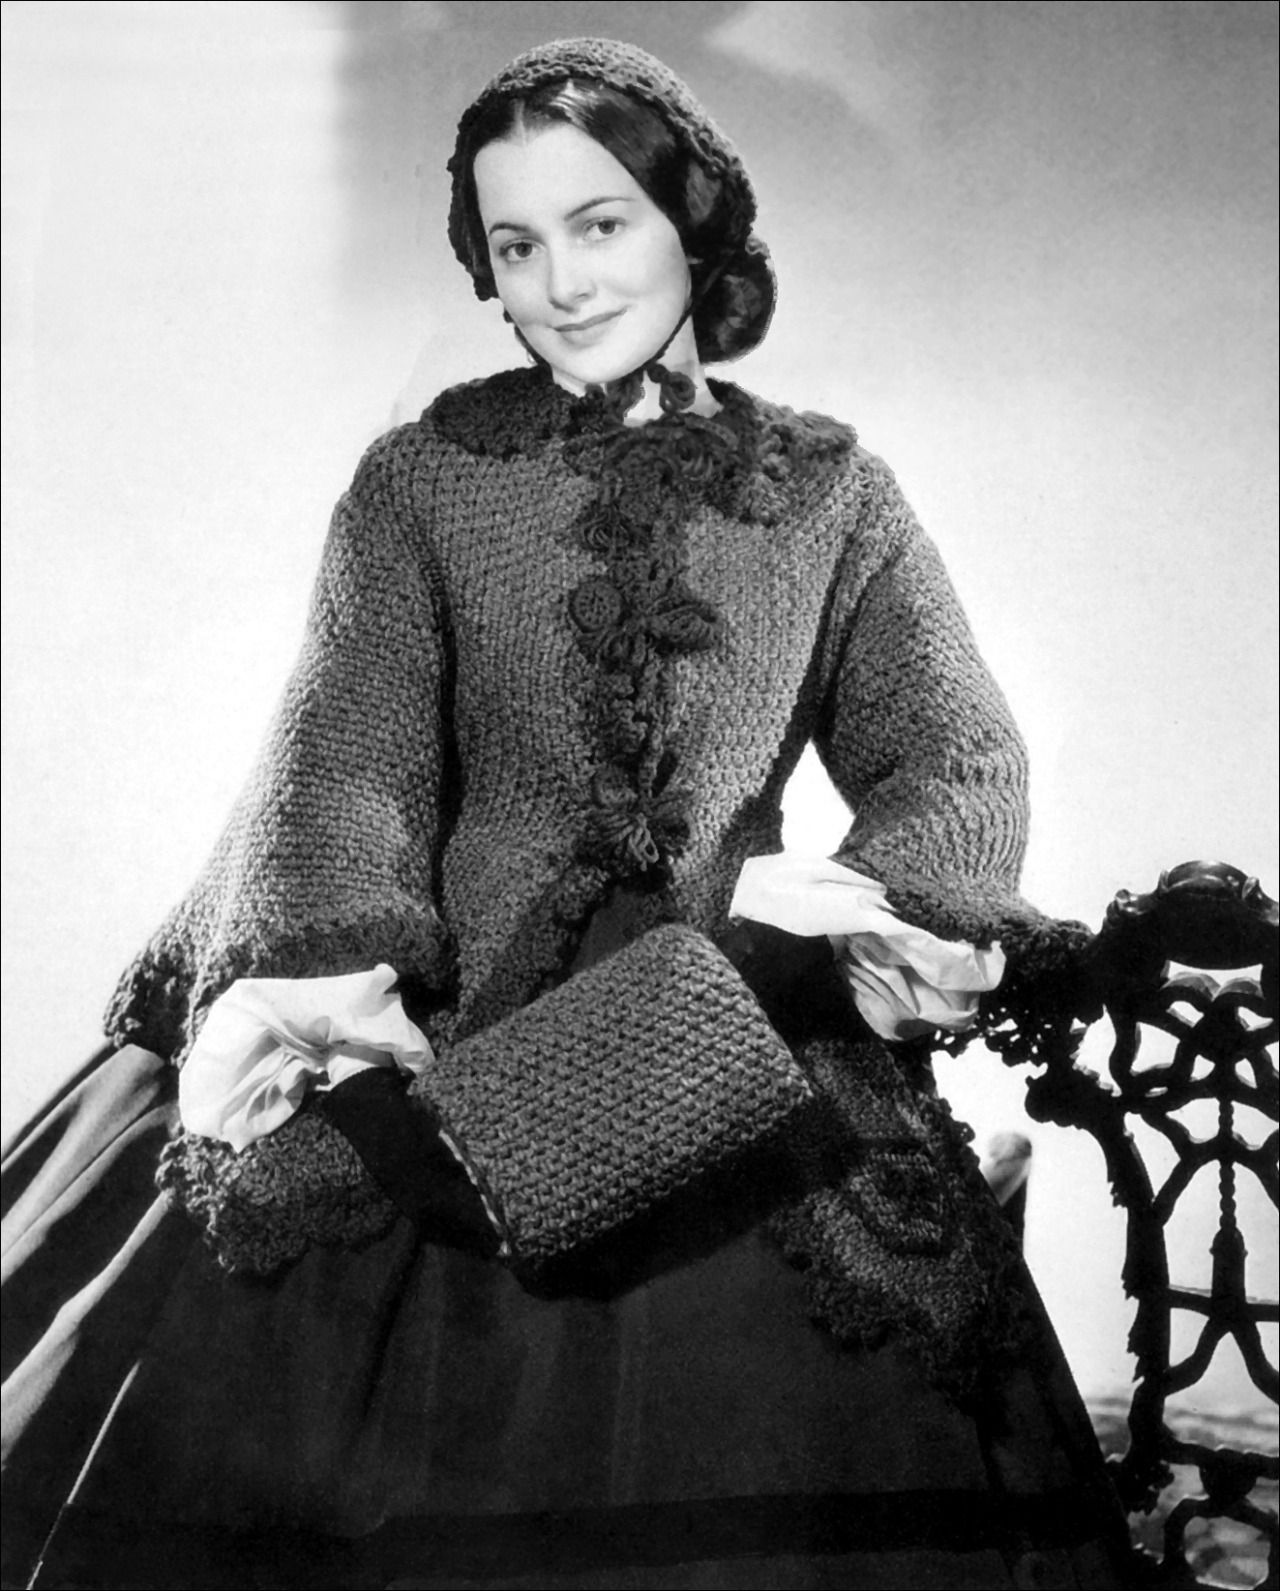 This knitted wool coat was first worn by Olivia de